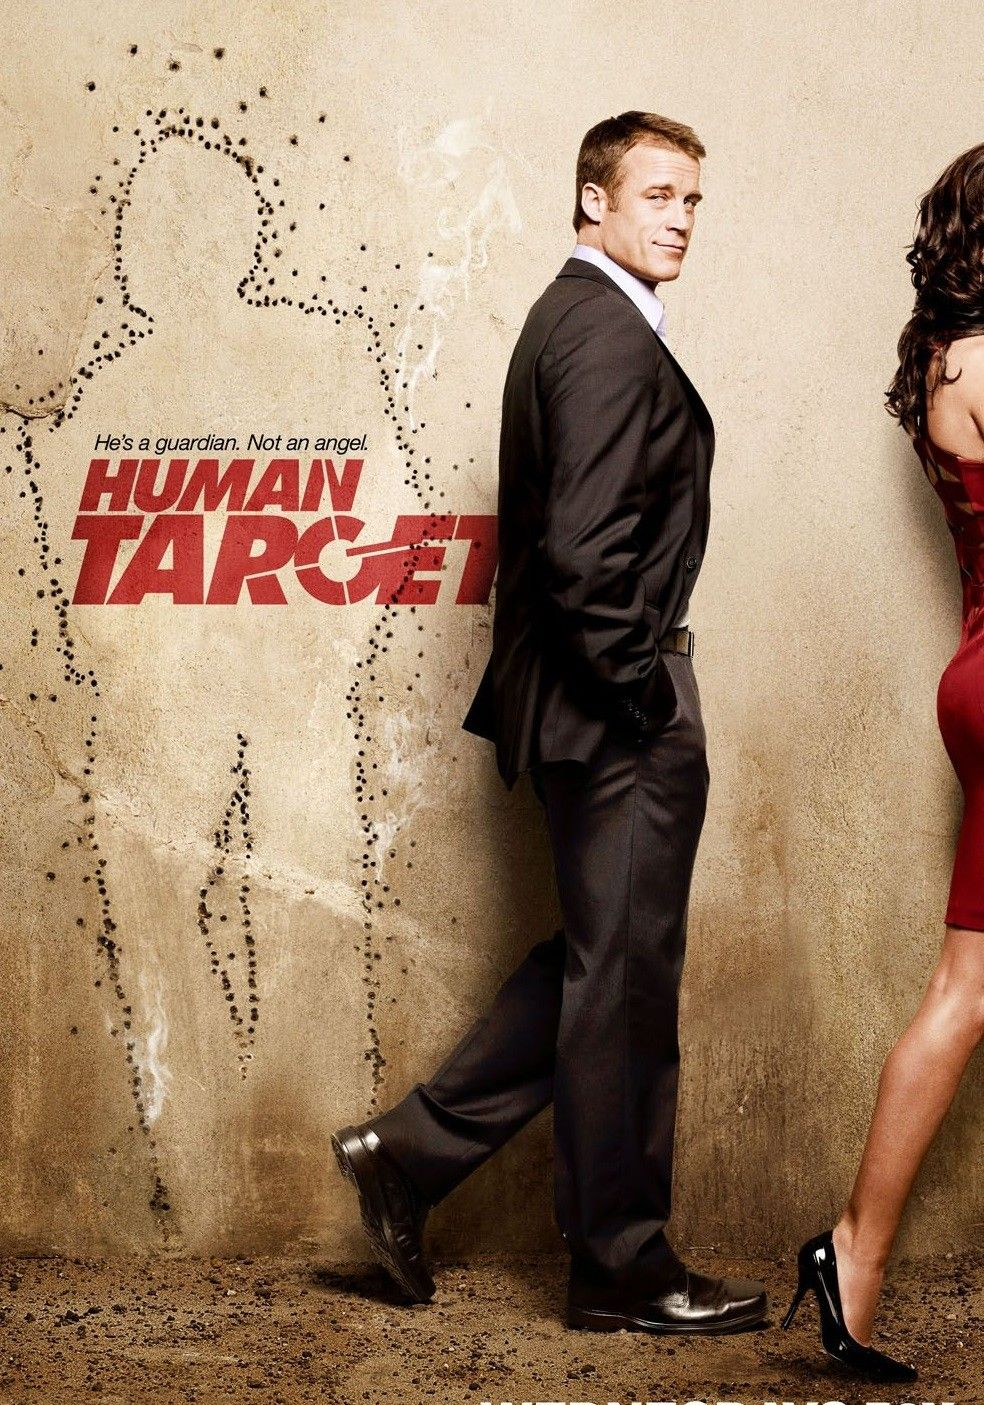 Human Target Season 2 Episode 12 The Trouble With Harry Watch Online For Free In Hd Quality With English Sub Human Target Free Tv Shows Online Free Tv Shows